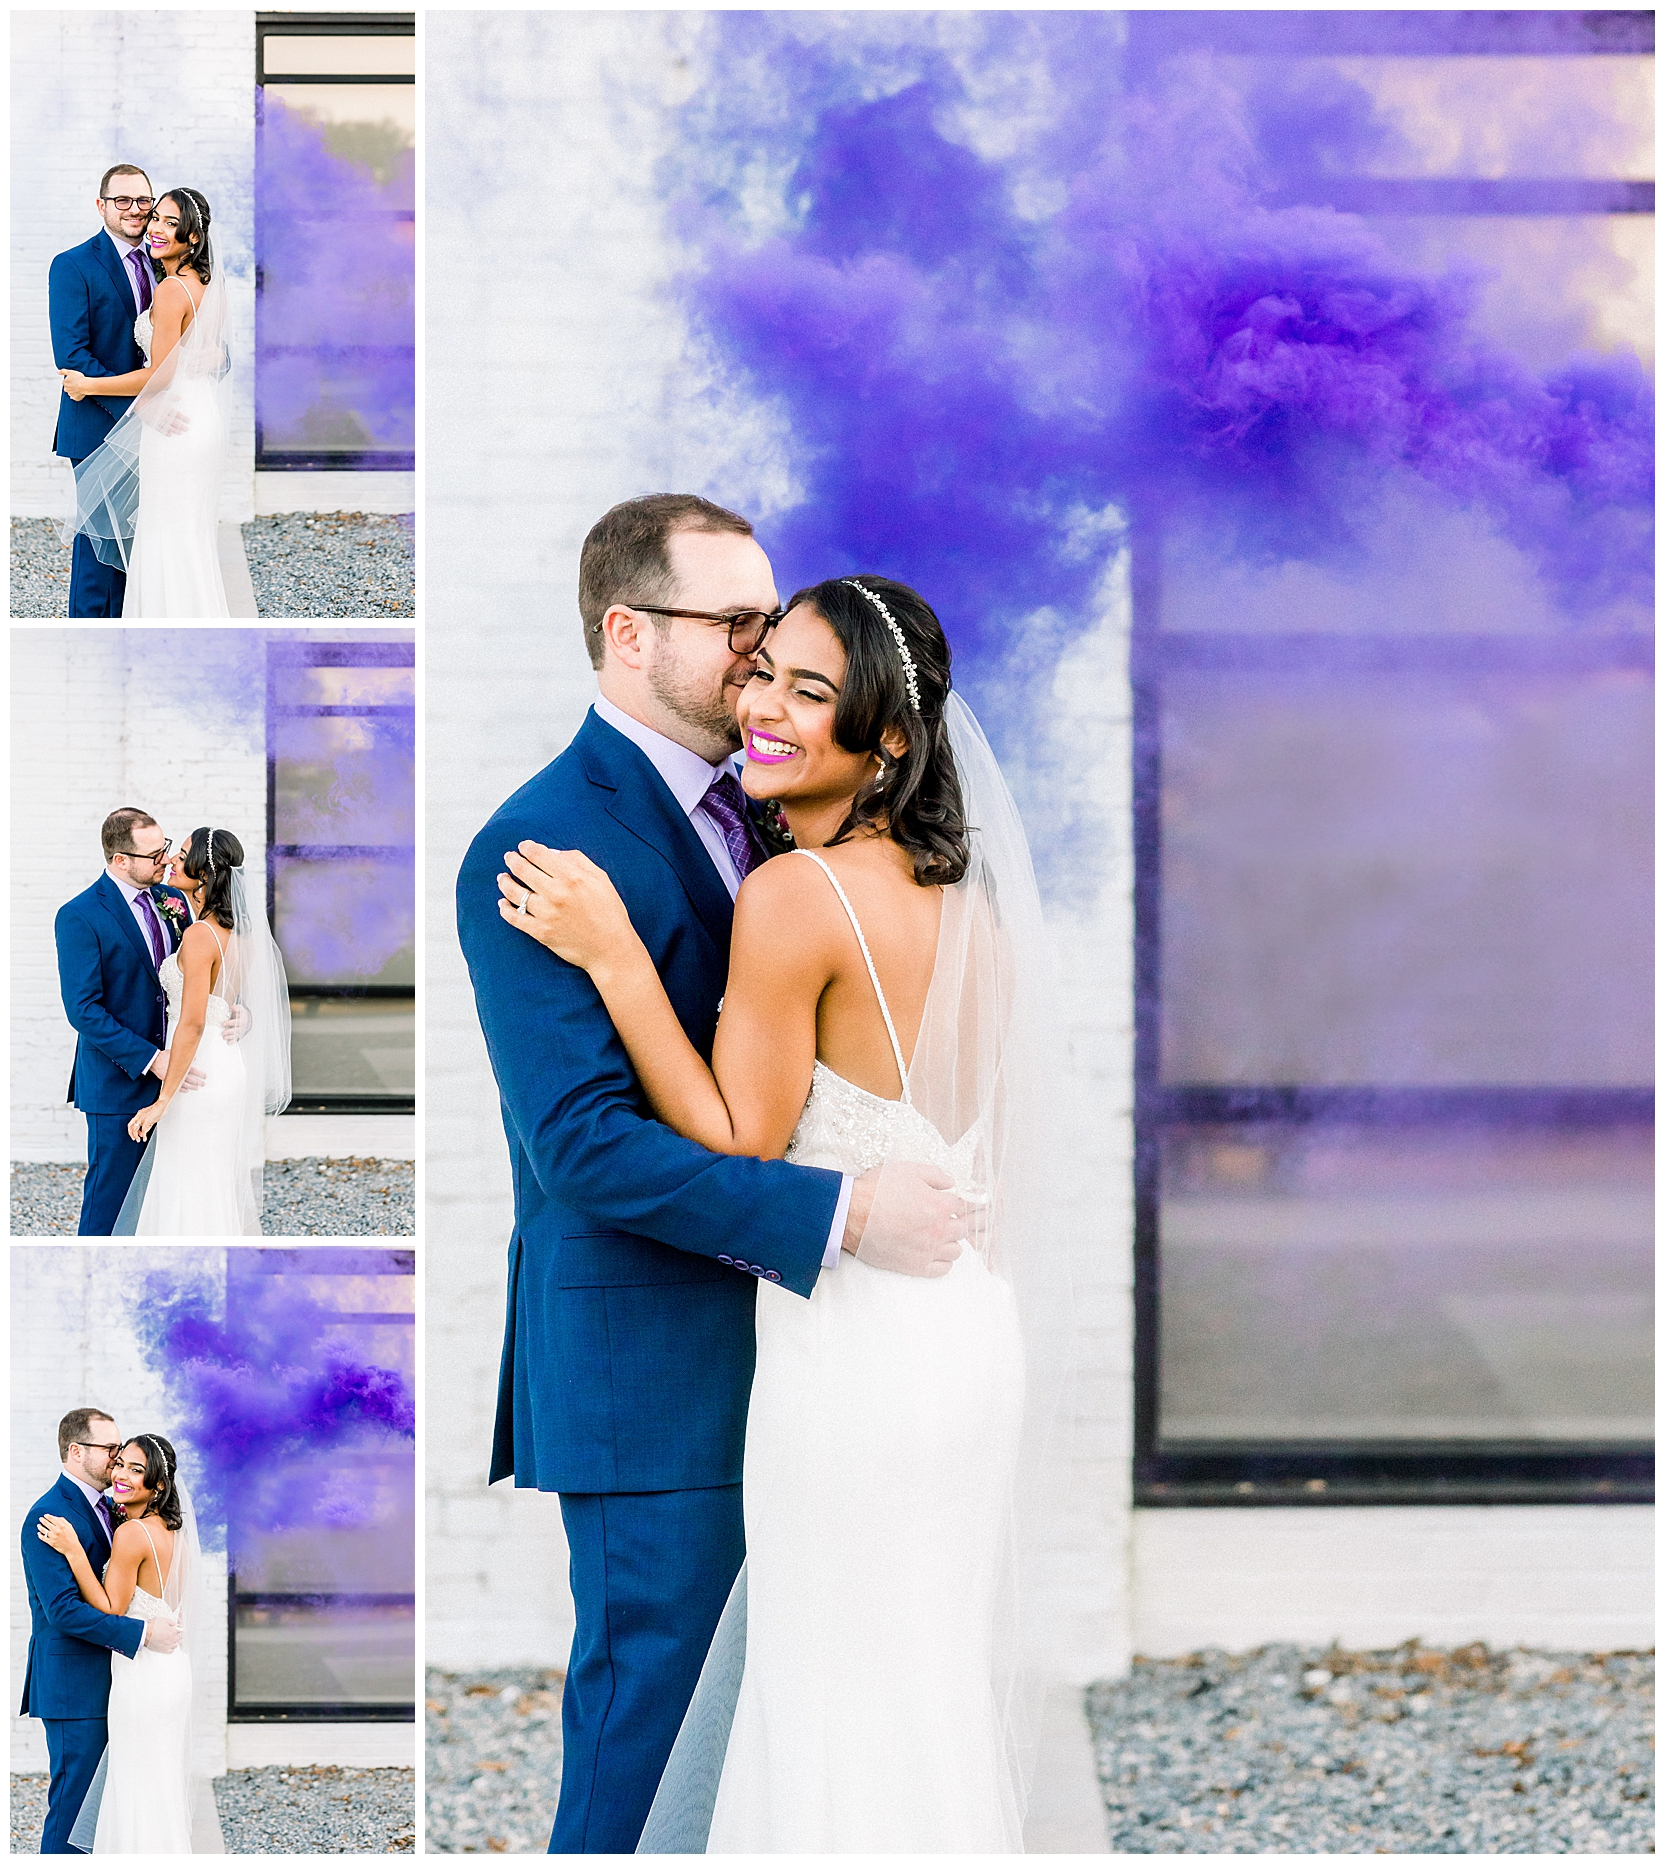 jessicafredericks_lakeland_tampa_wedding_purple_crazy hour_0059.jpg